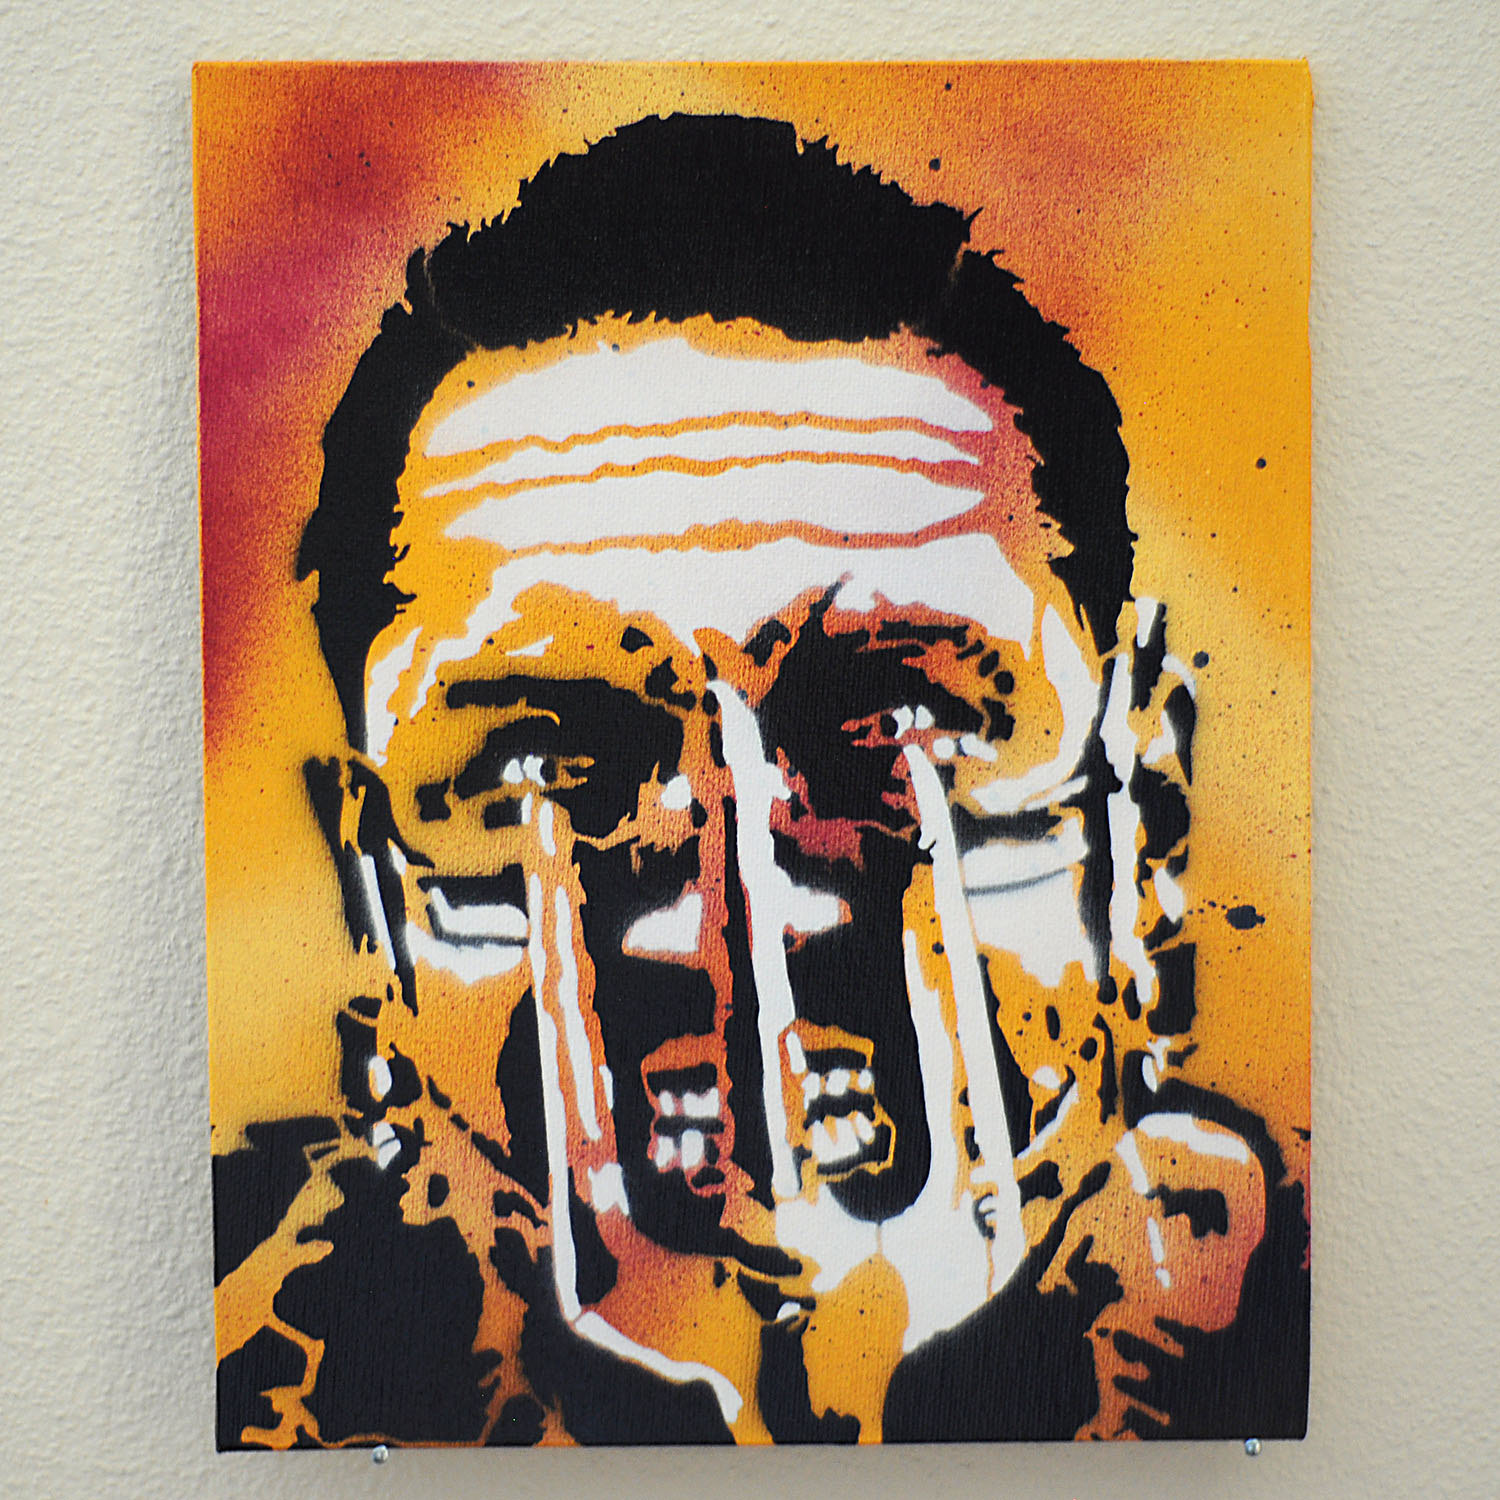 Mad max clipart image free library Mad Max Fury Road Multilayer Graffiti Stencil Art on Canvas image free library